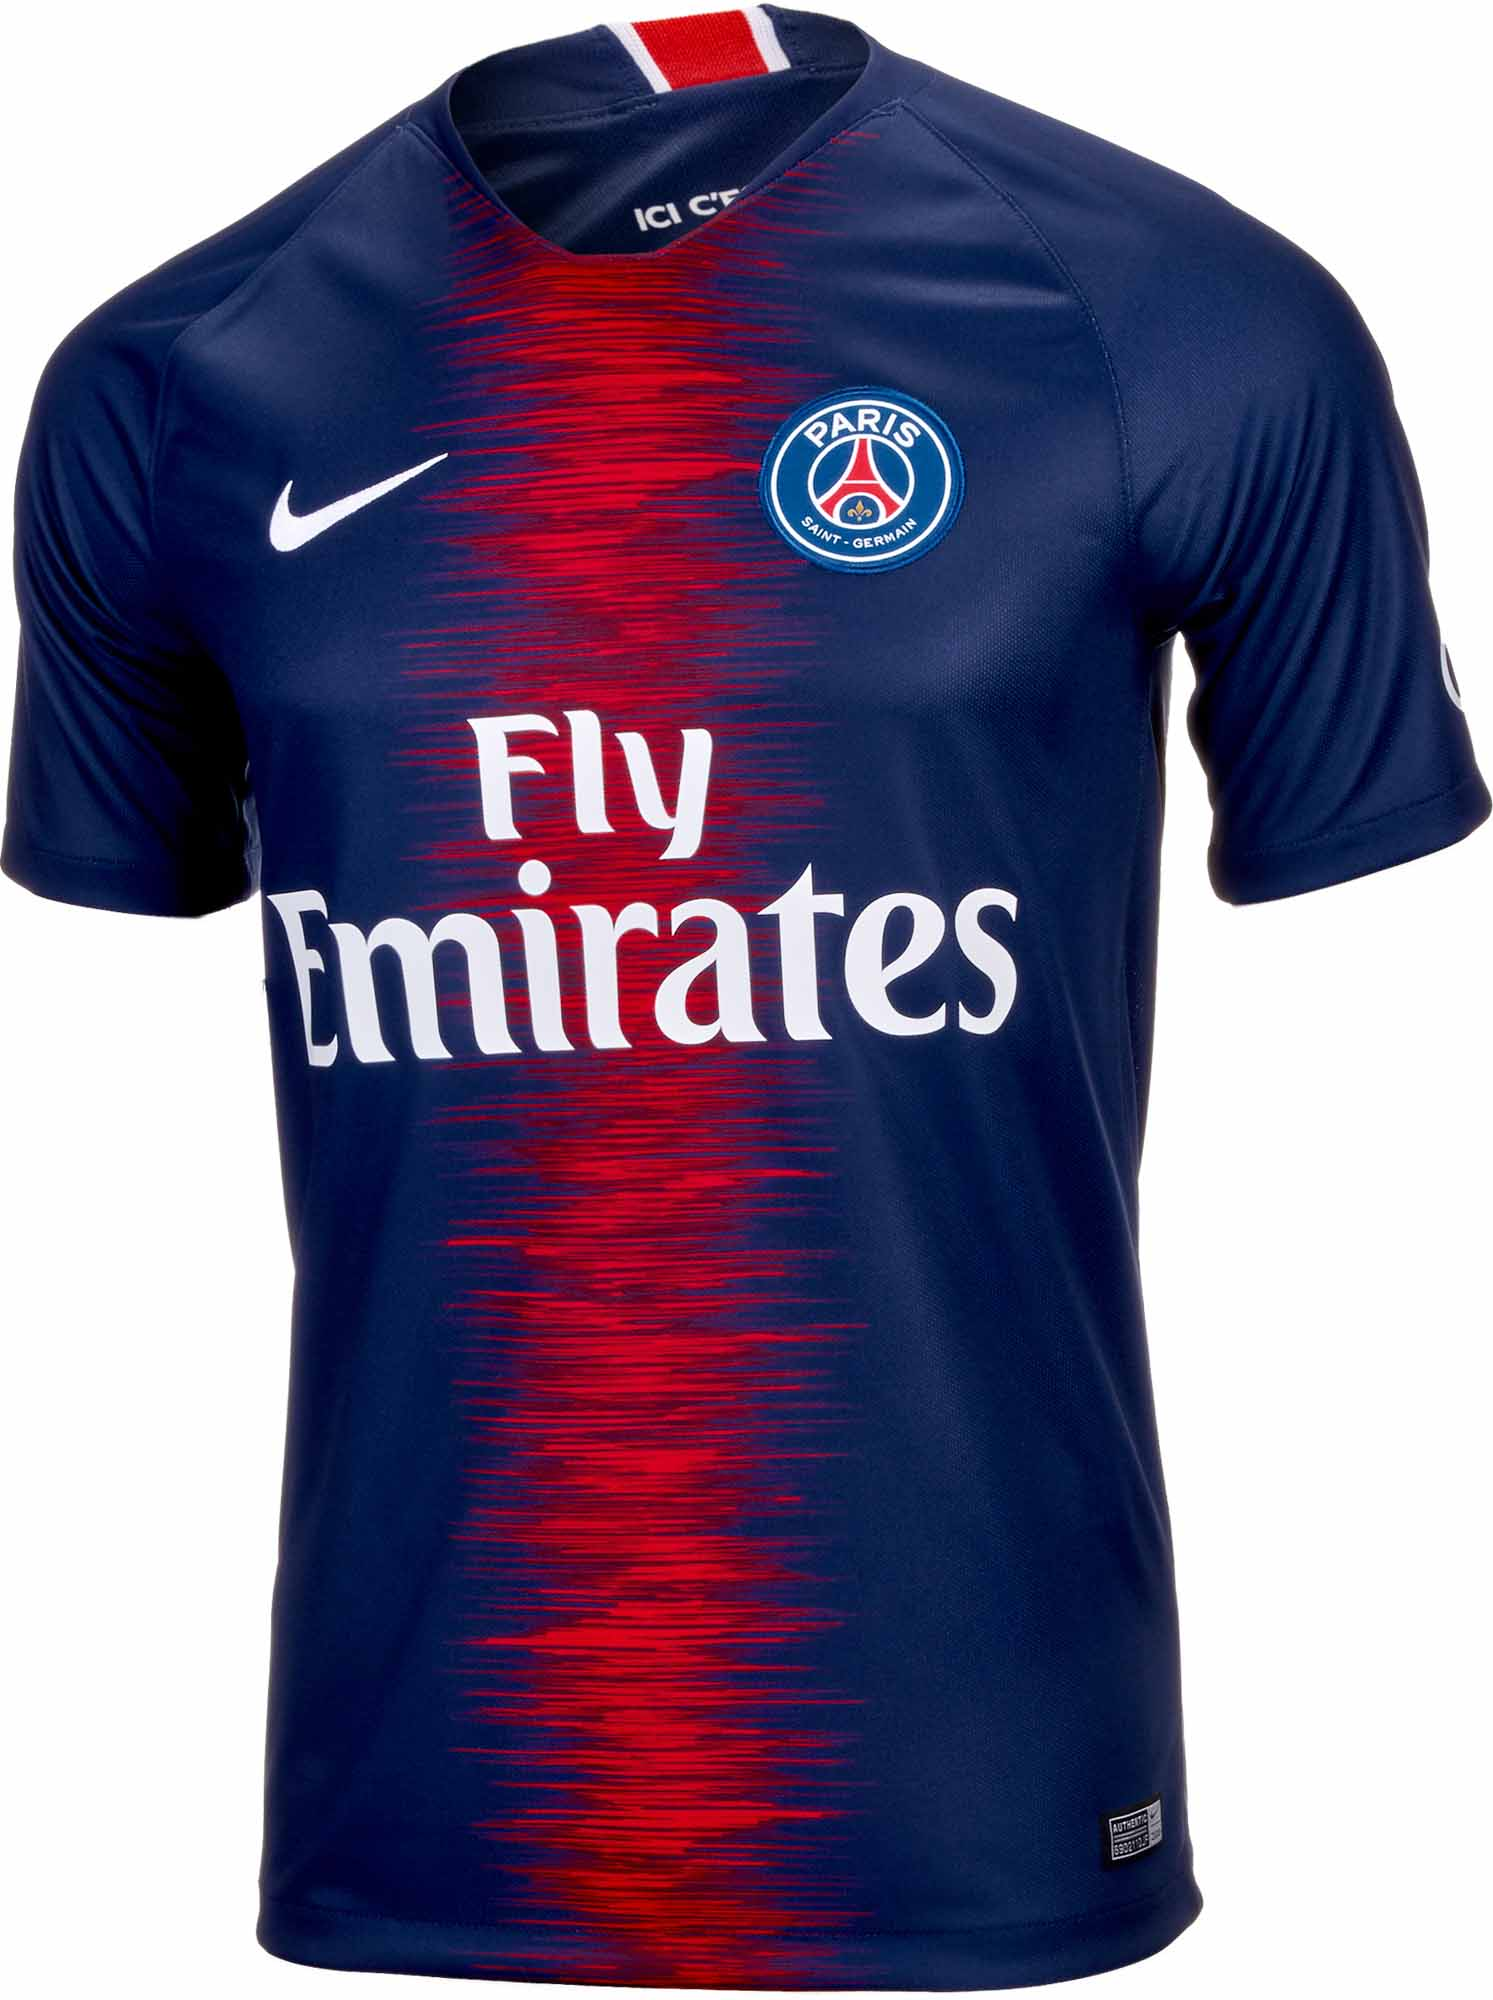 great fit 9ee29 671e6 Nike PSG Home Jersey 2018-19 - Soccer Master